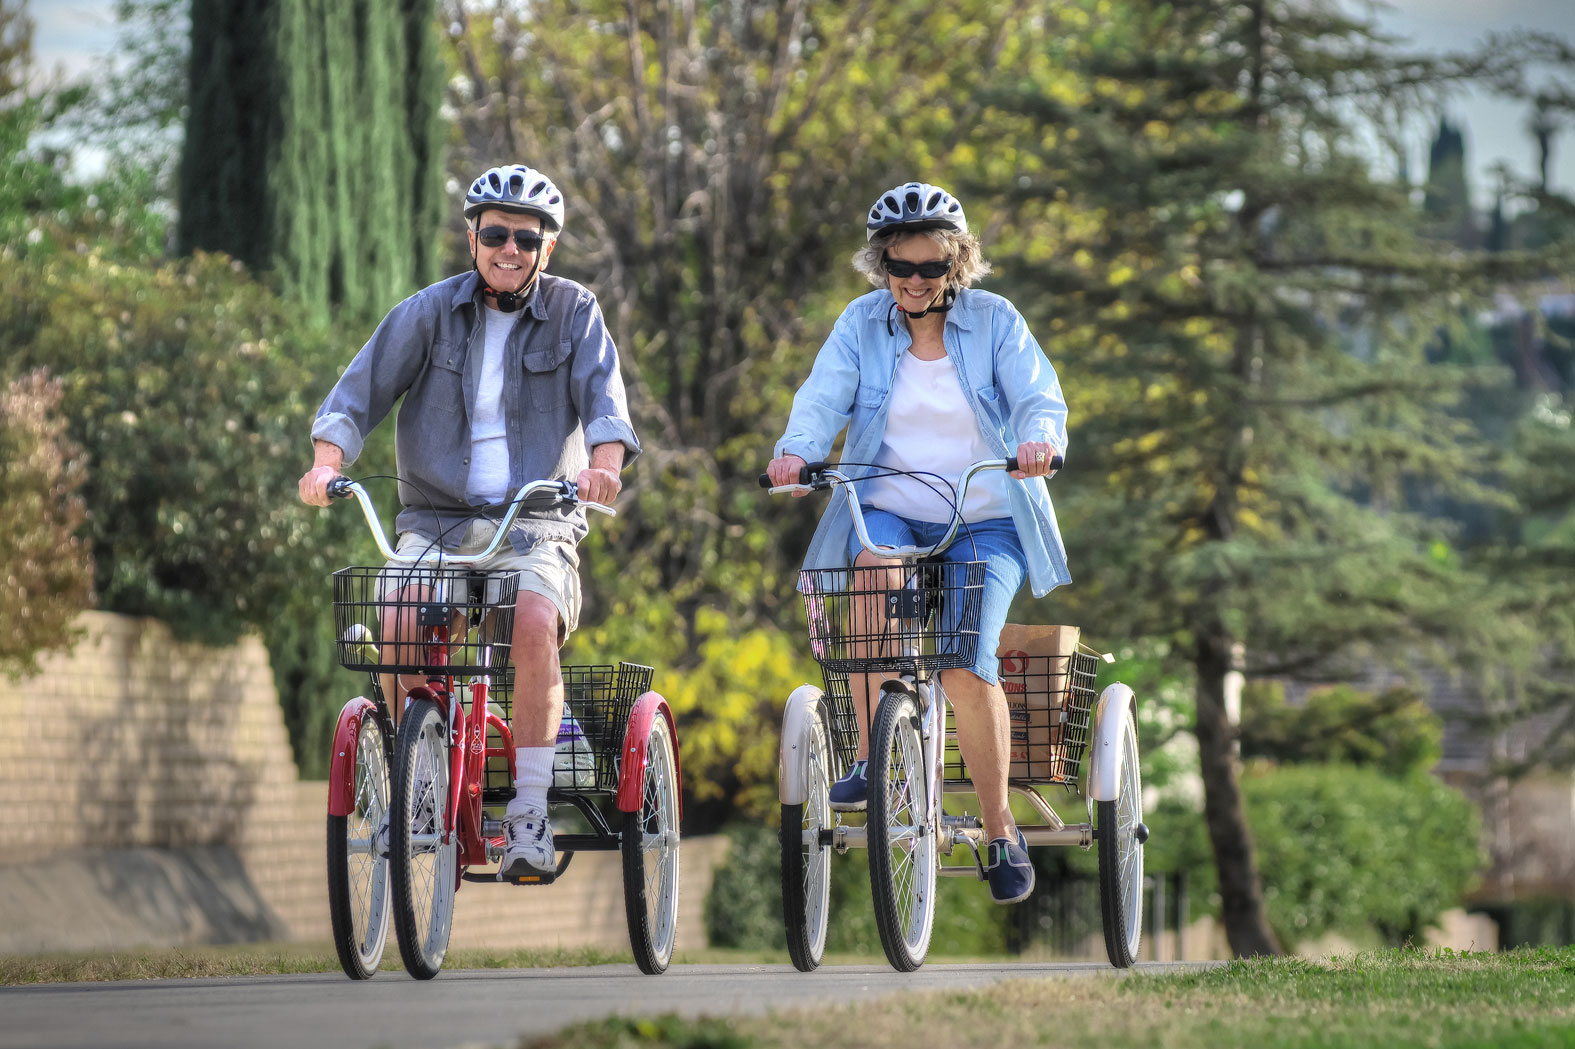 Two riders for an afternoon ride on their ride on Manhattan Adult Trikes